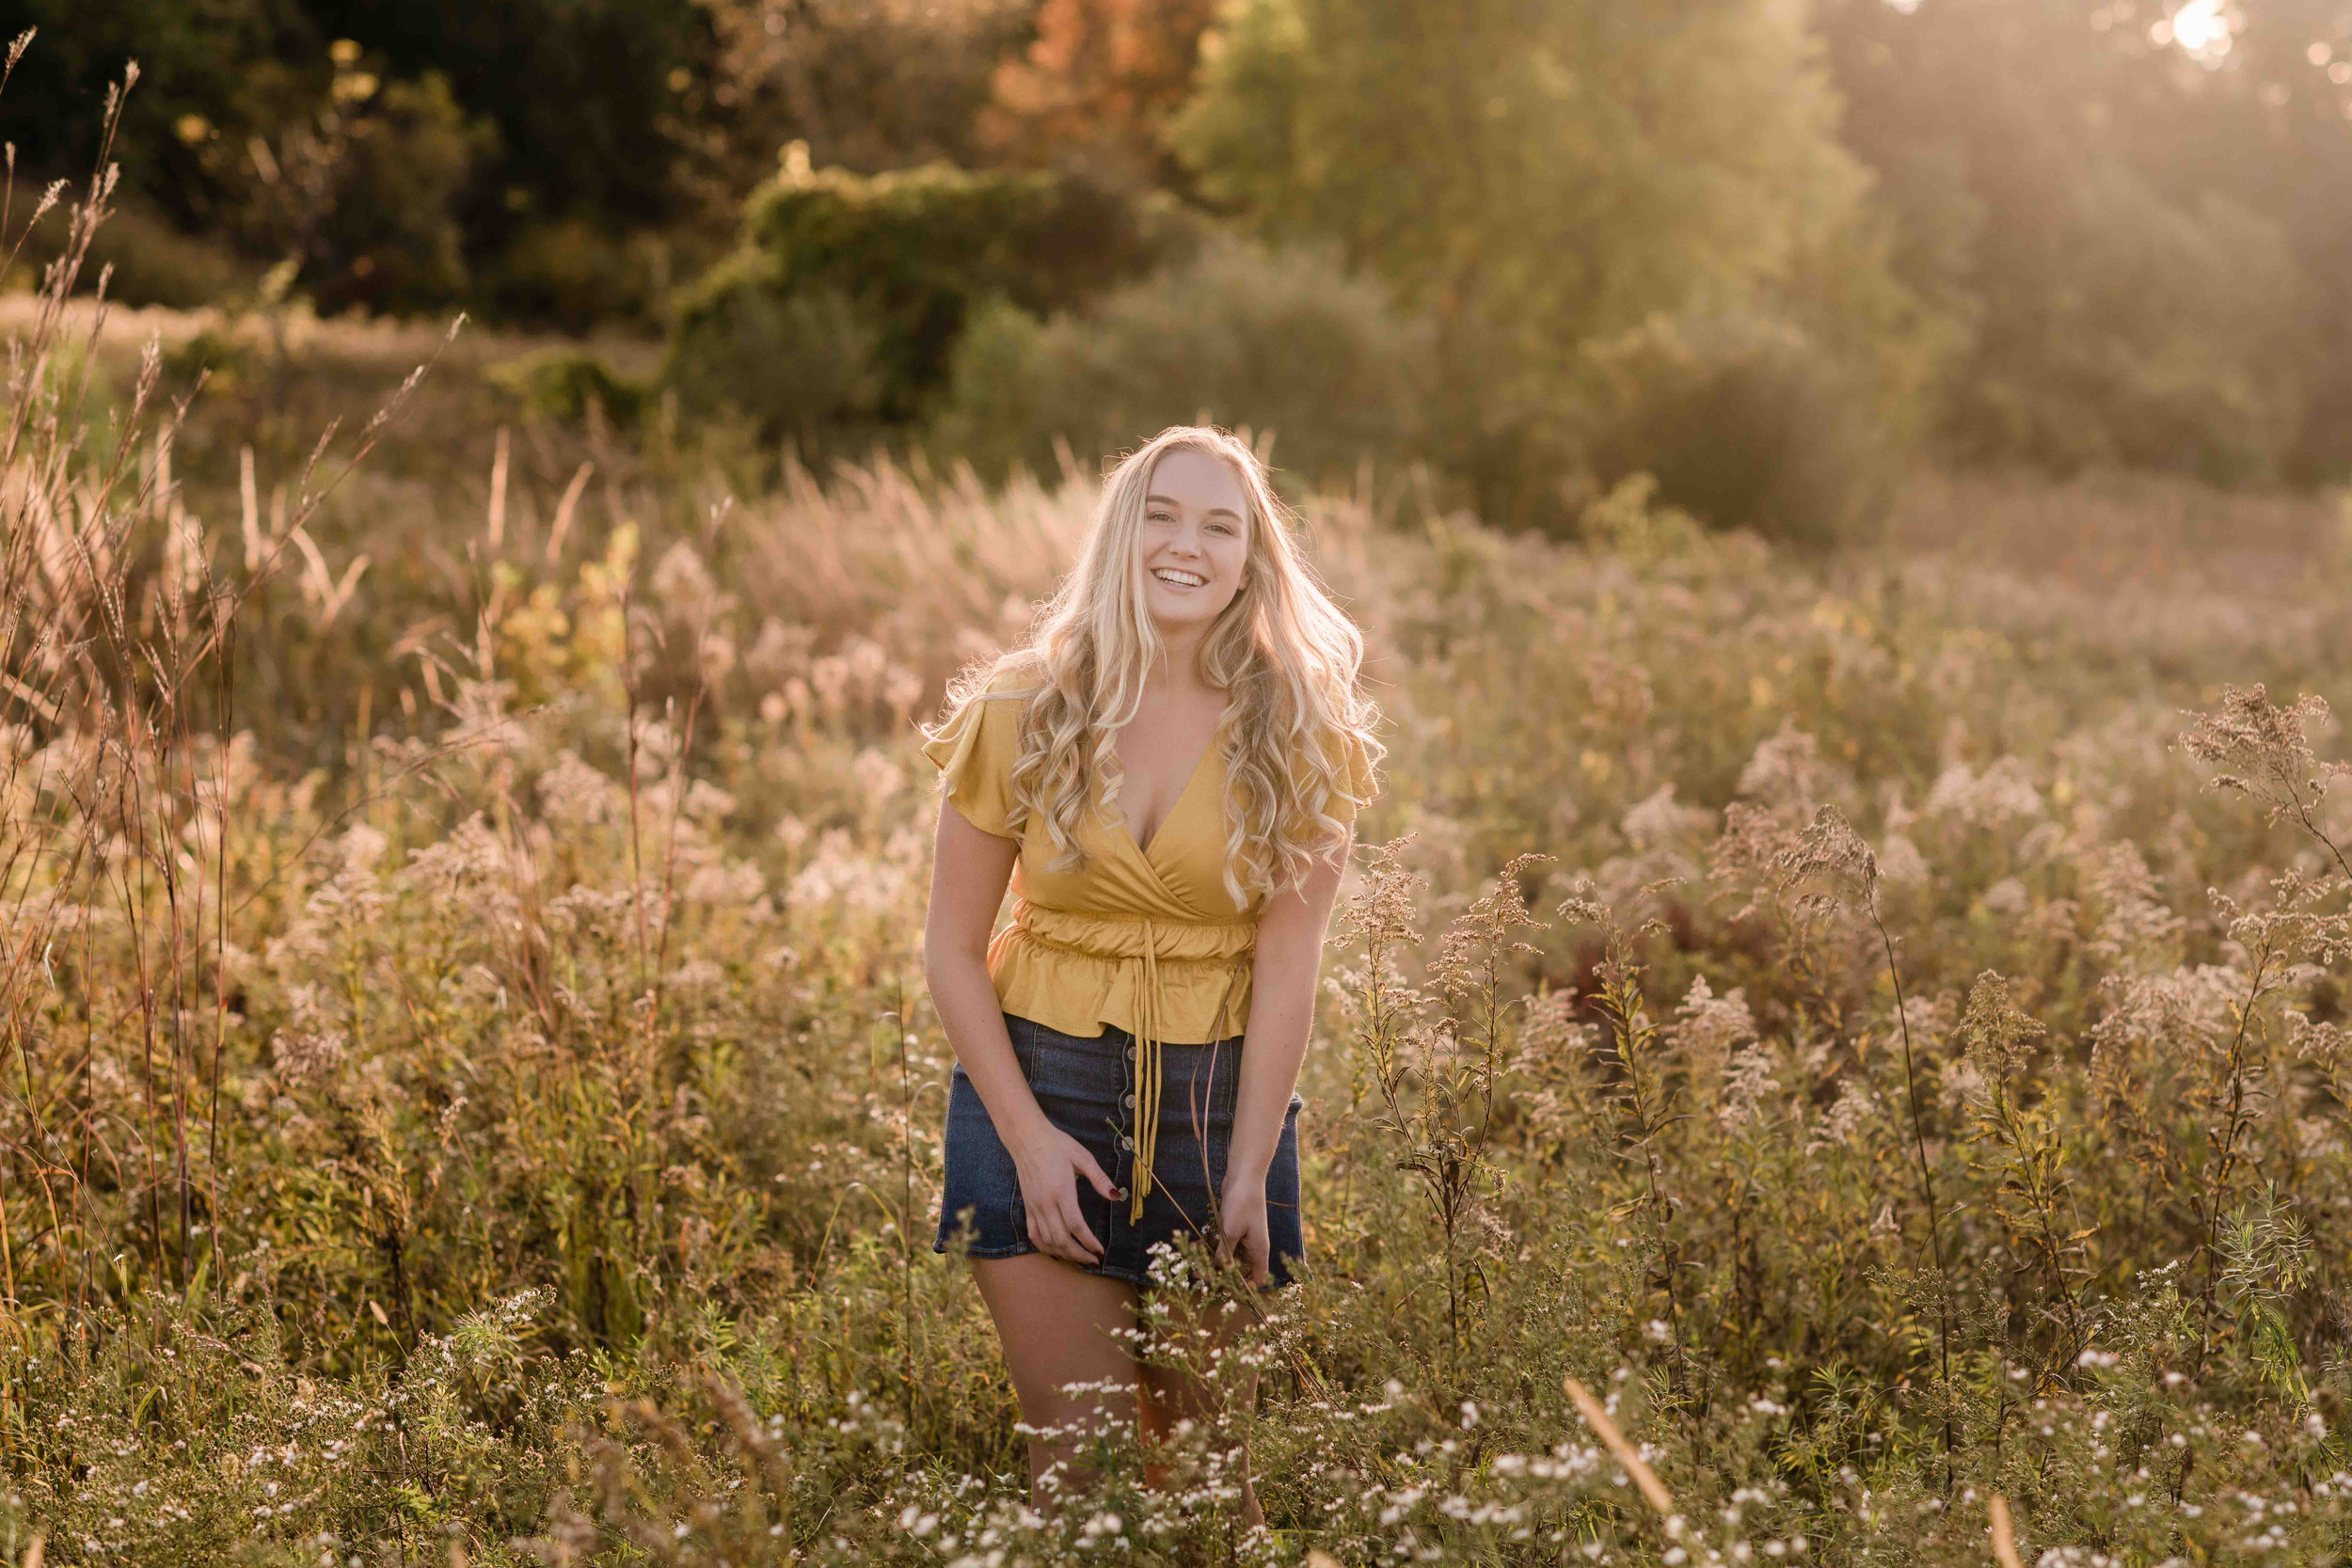 High school senior laughs in a field